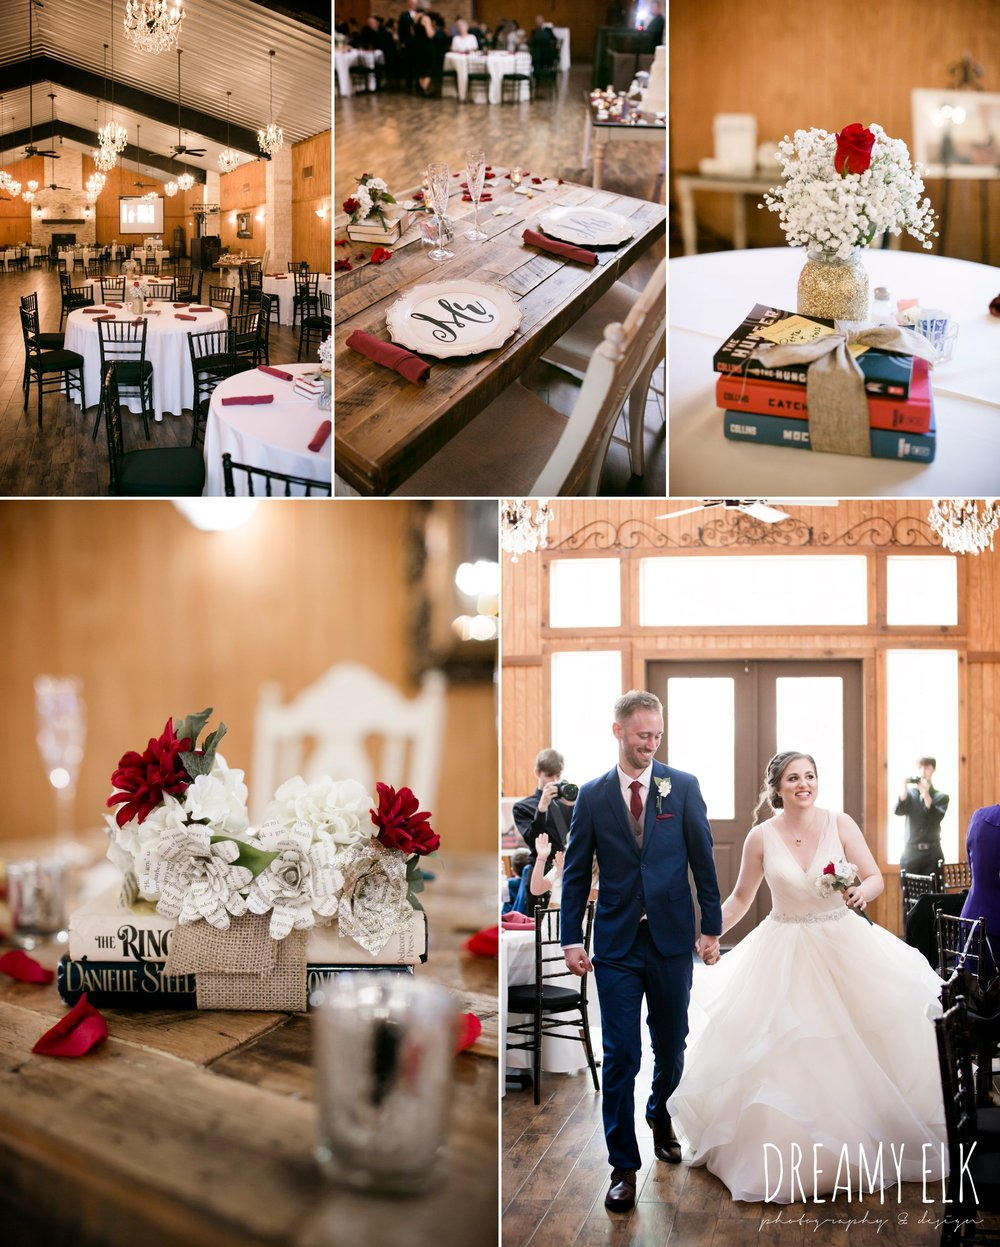 book table centerpieces, fall wedding, gold and navy wedding photo, ashelynn manor, austin texas wedding photographer, dreamy elk photography and design, emily ross